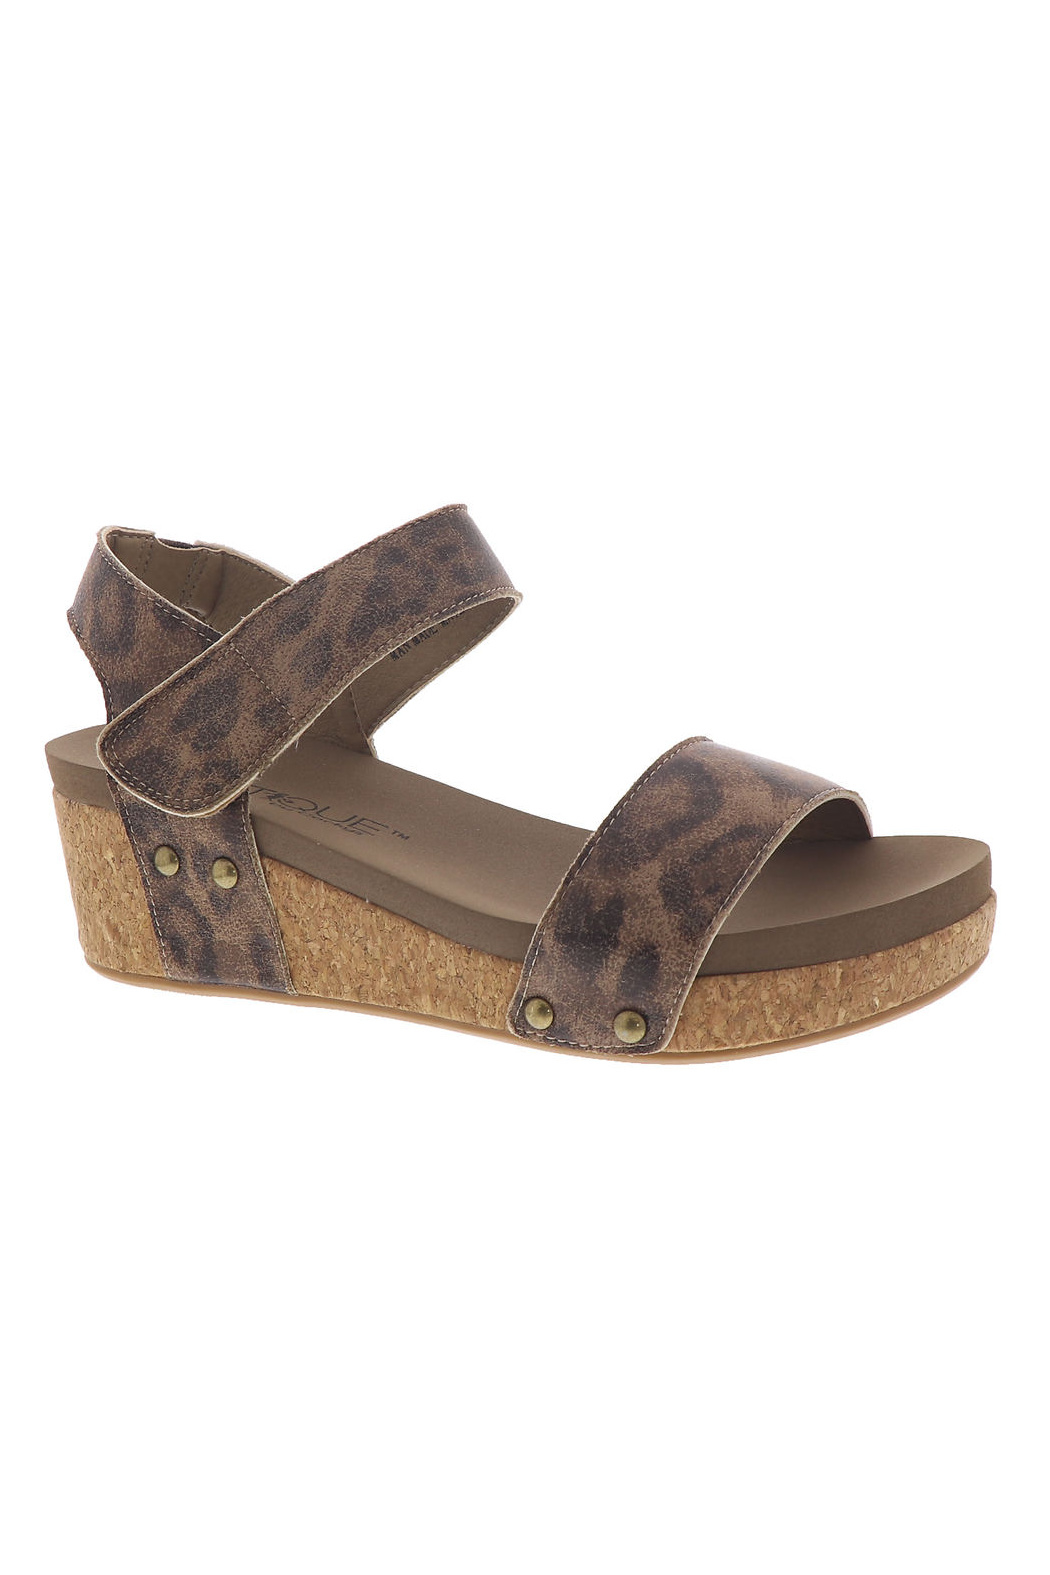 Corky's Shoes Slidell Leopard wedge - Main Image